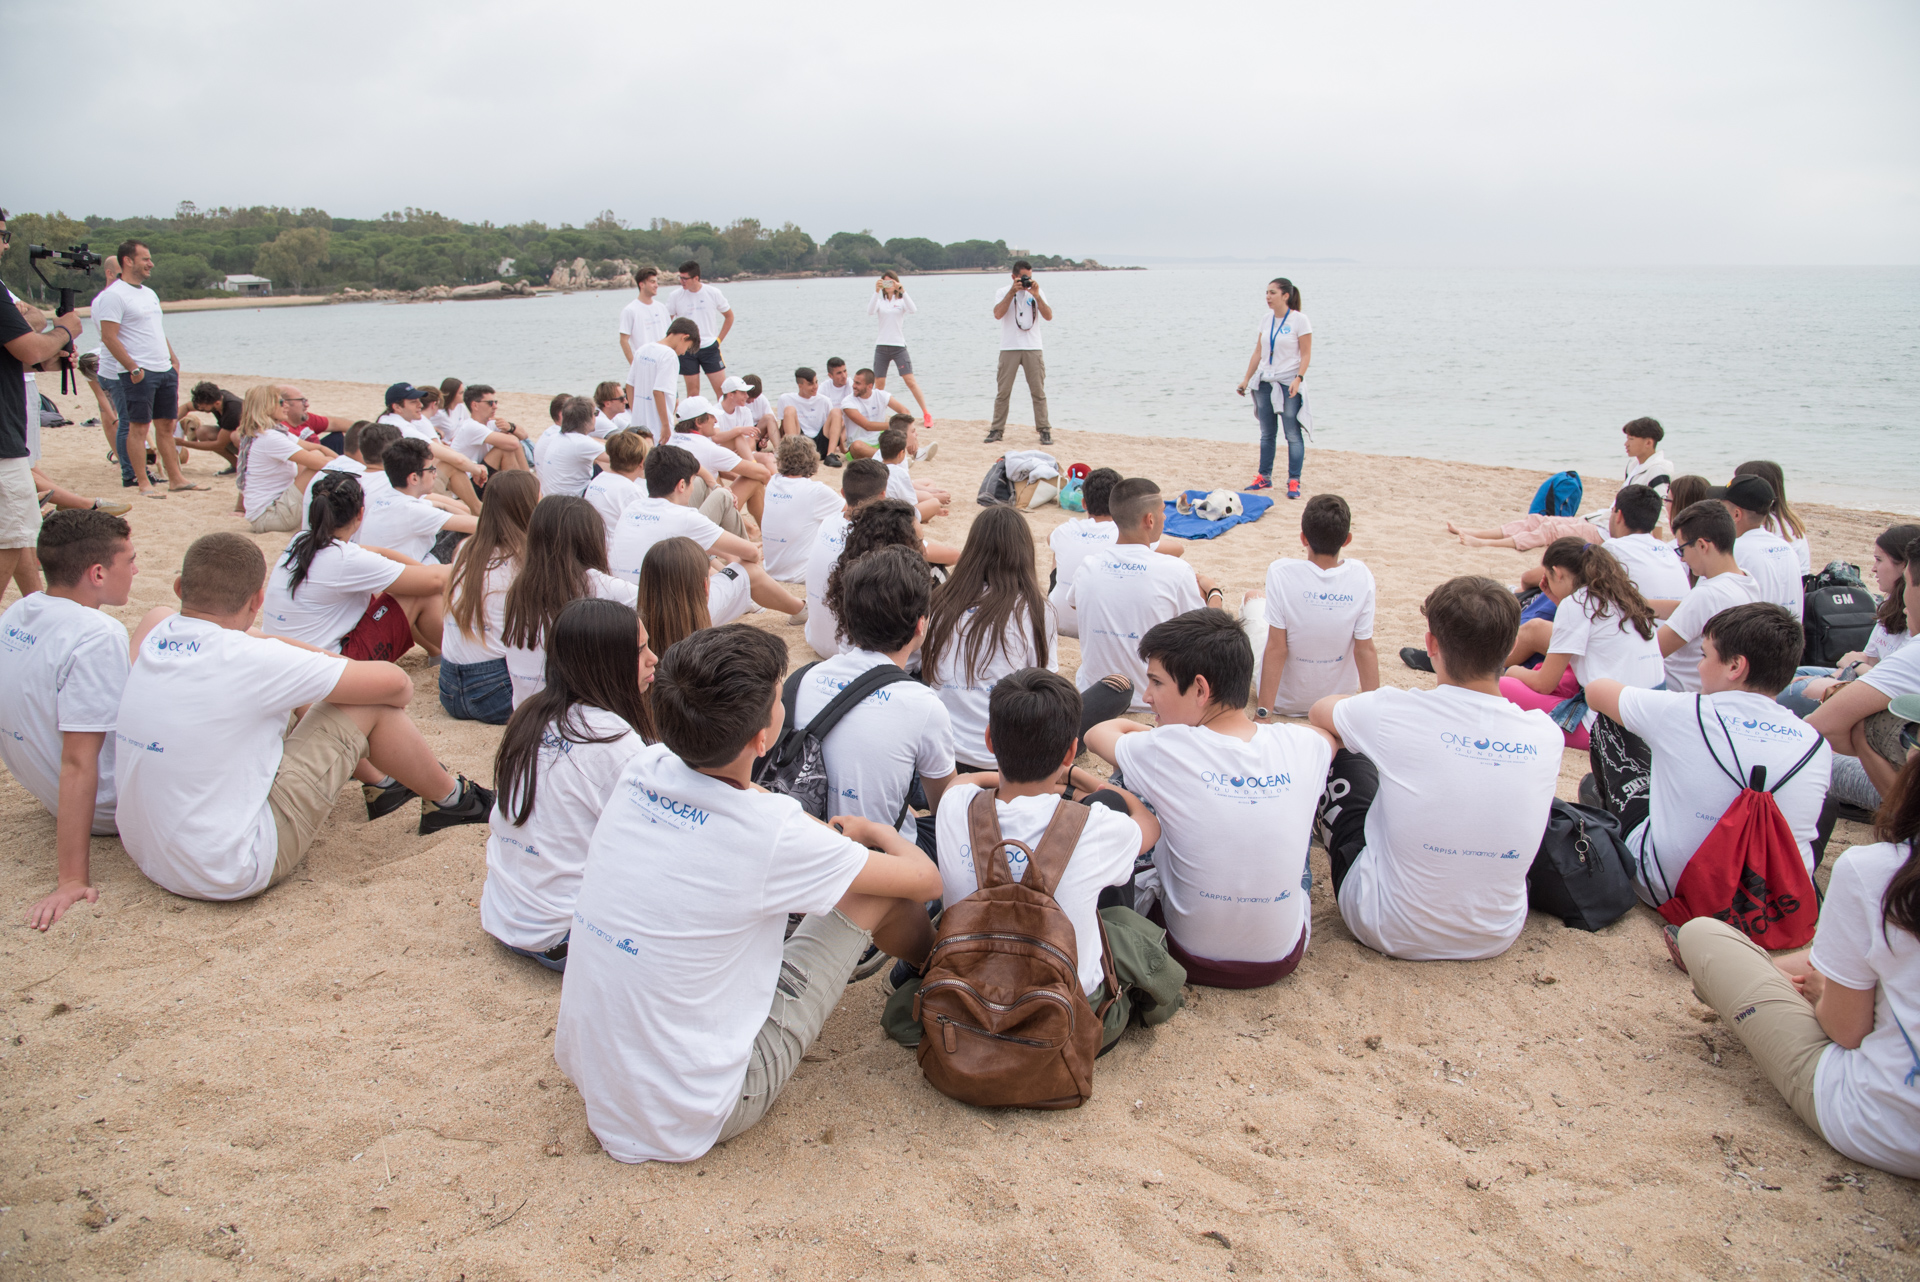 YCCS Clean Beach Day attracts more participants than ever - NEWS - Yacht Club Costa Smeralda